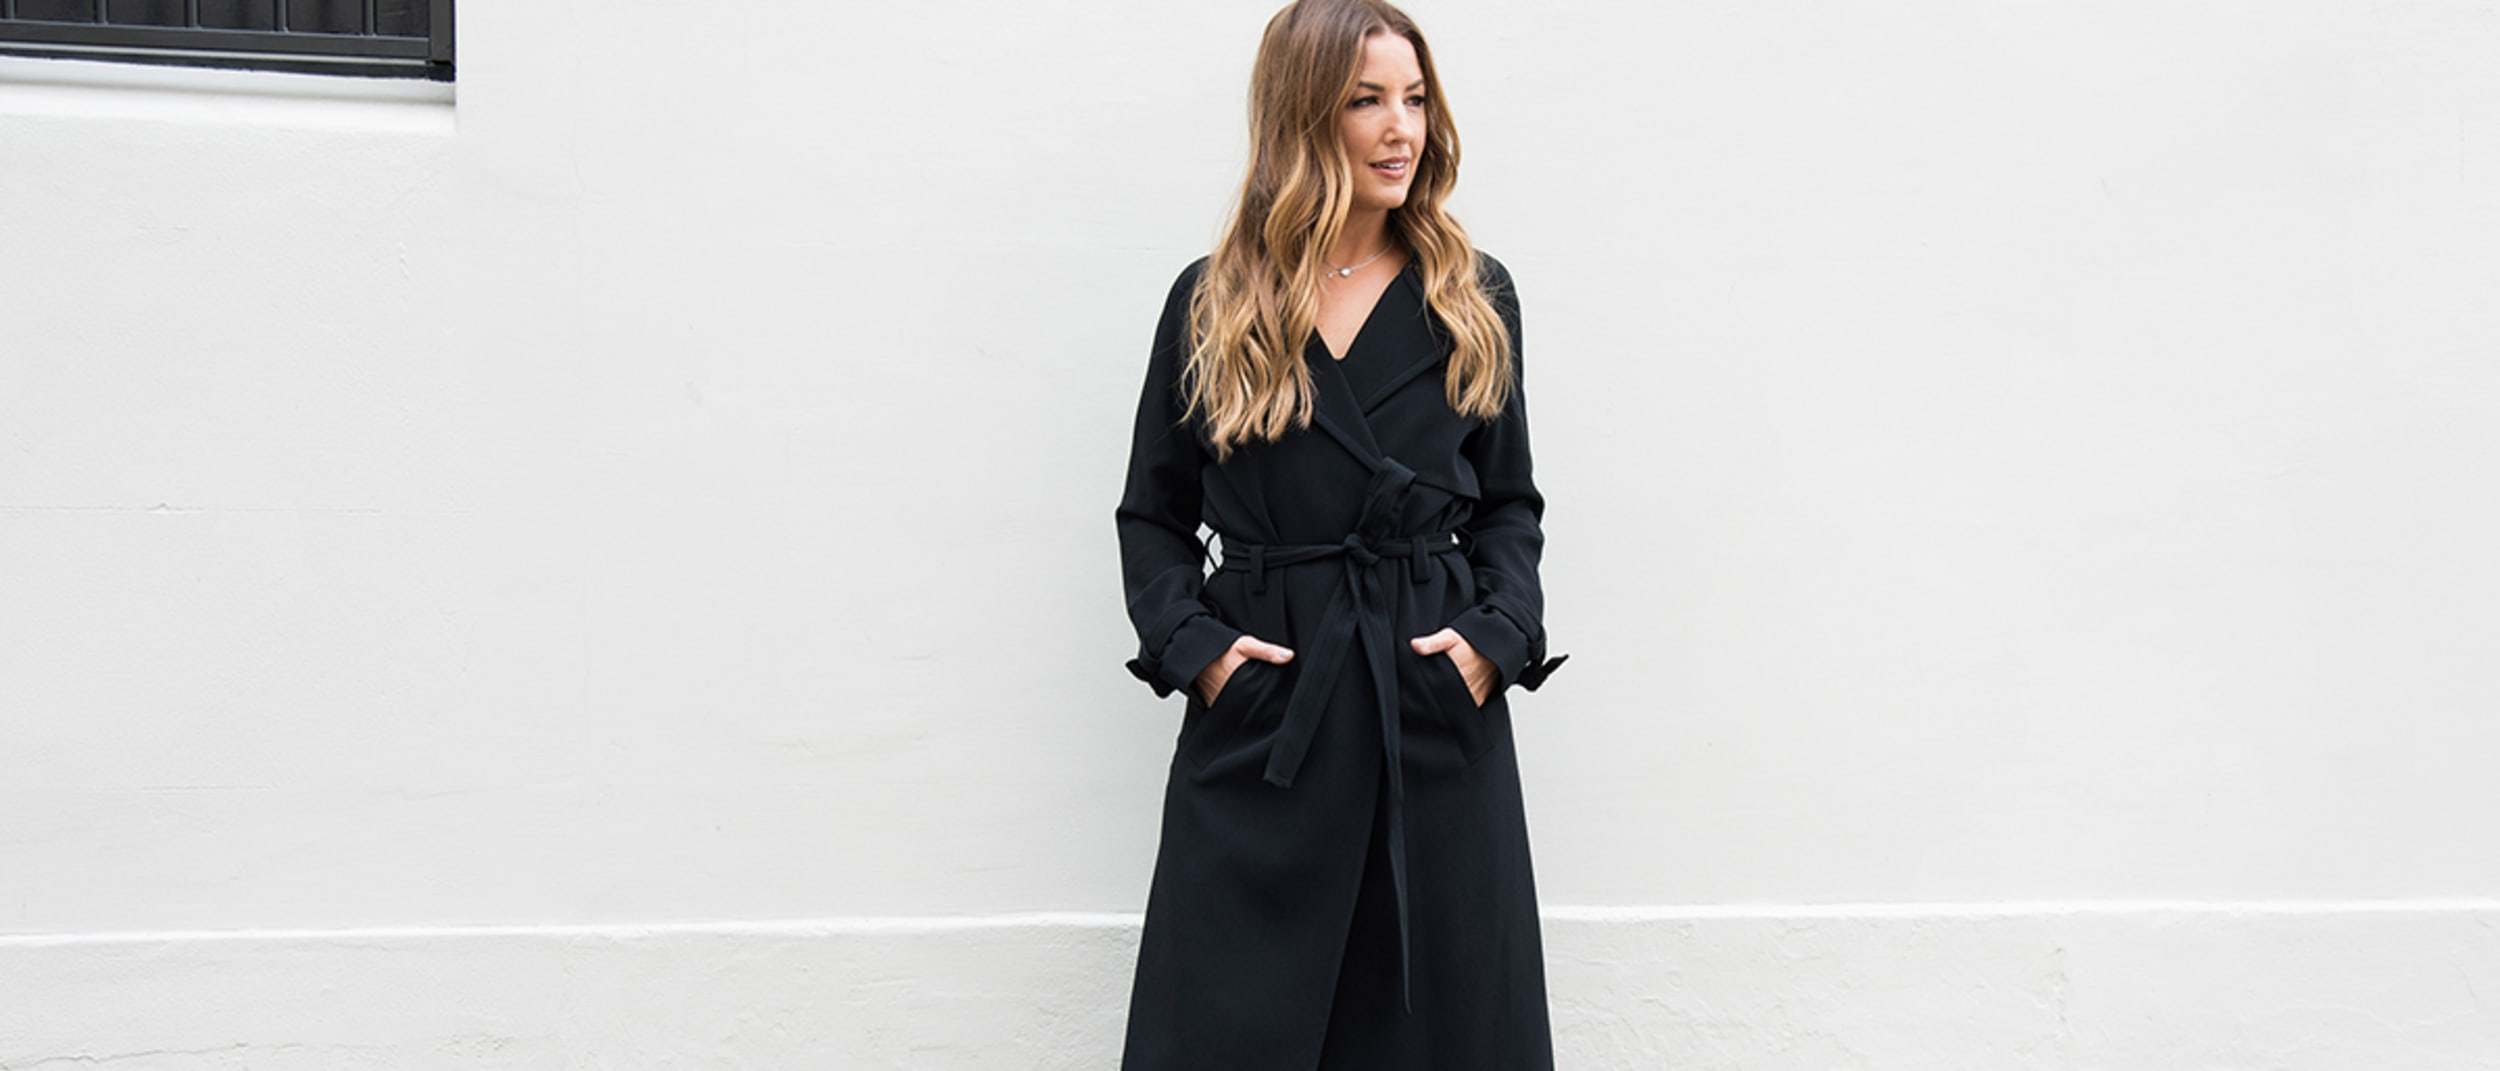 Master the trench coat look this season